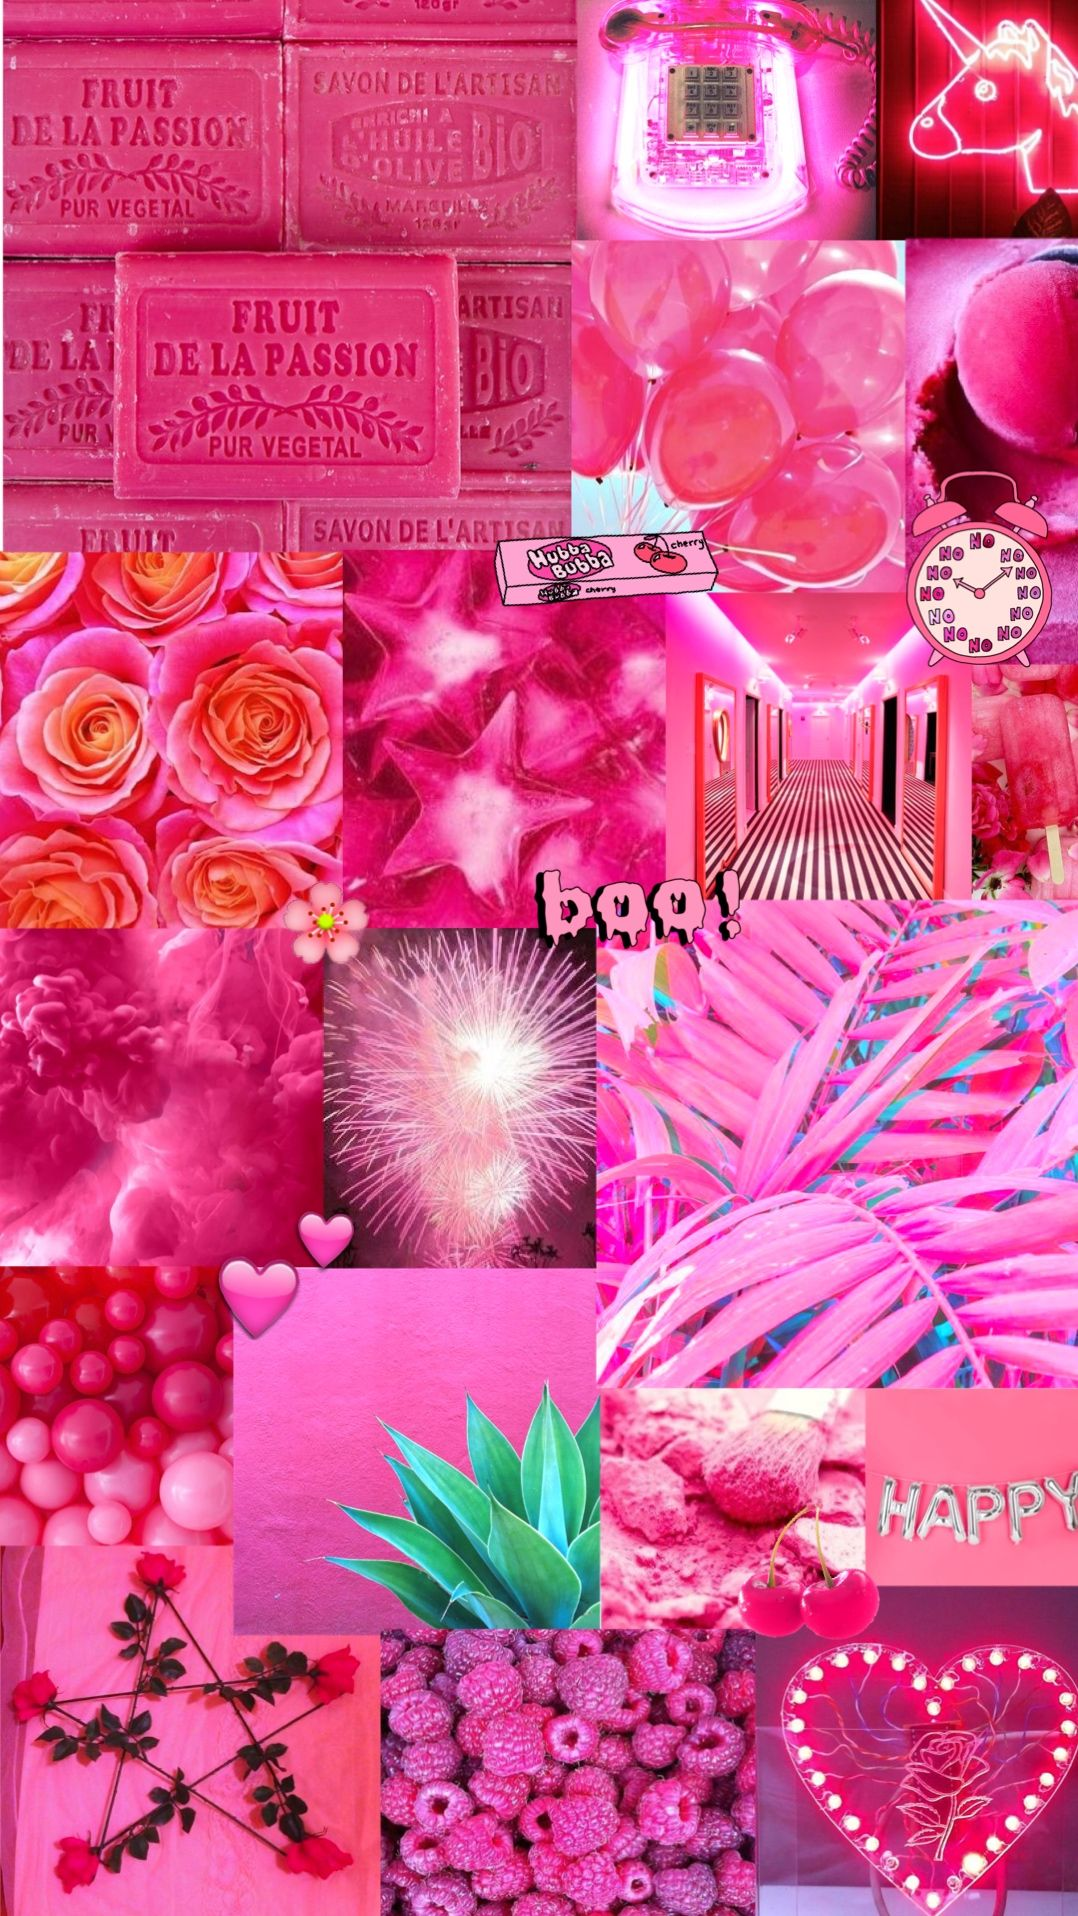 bright pink aesthetic background Aesthetics/Collages in